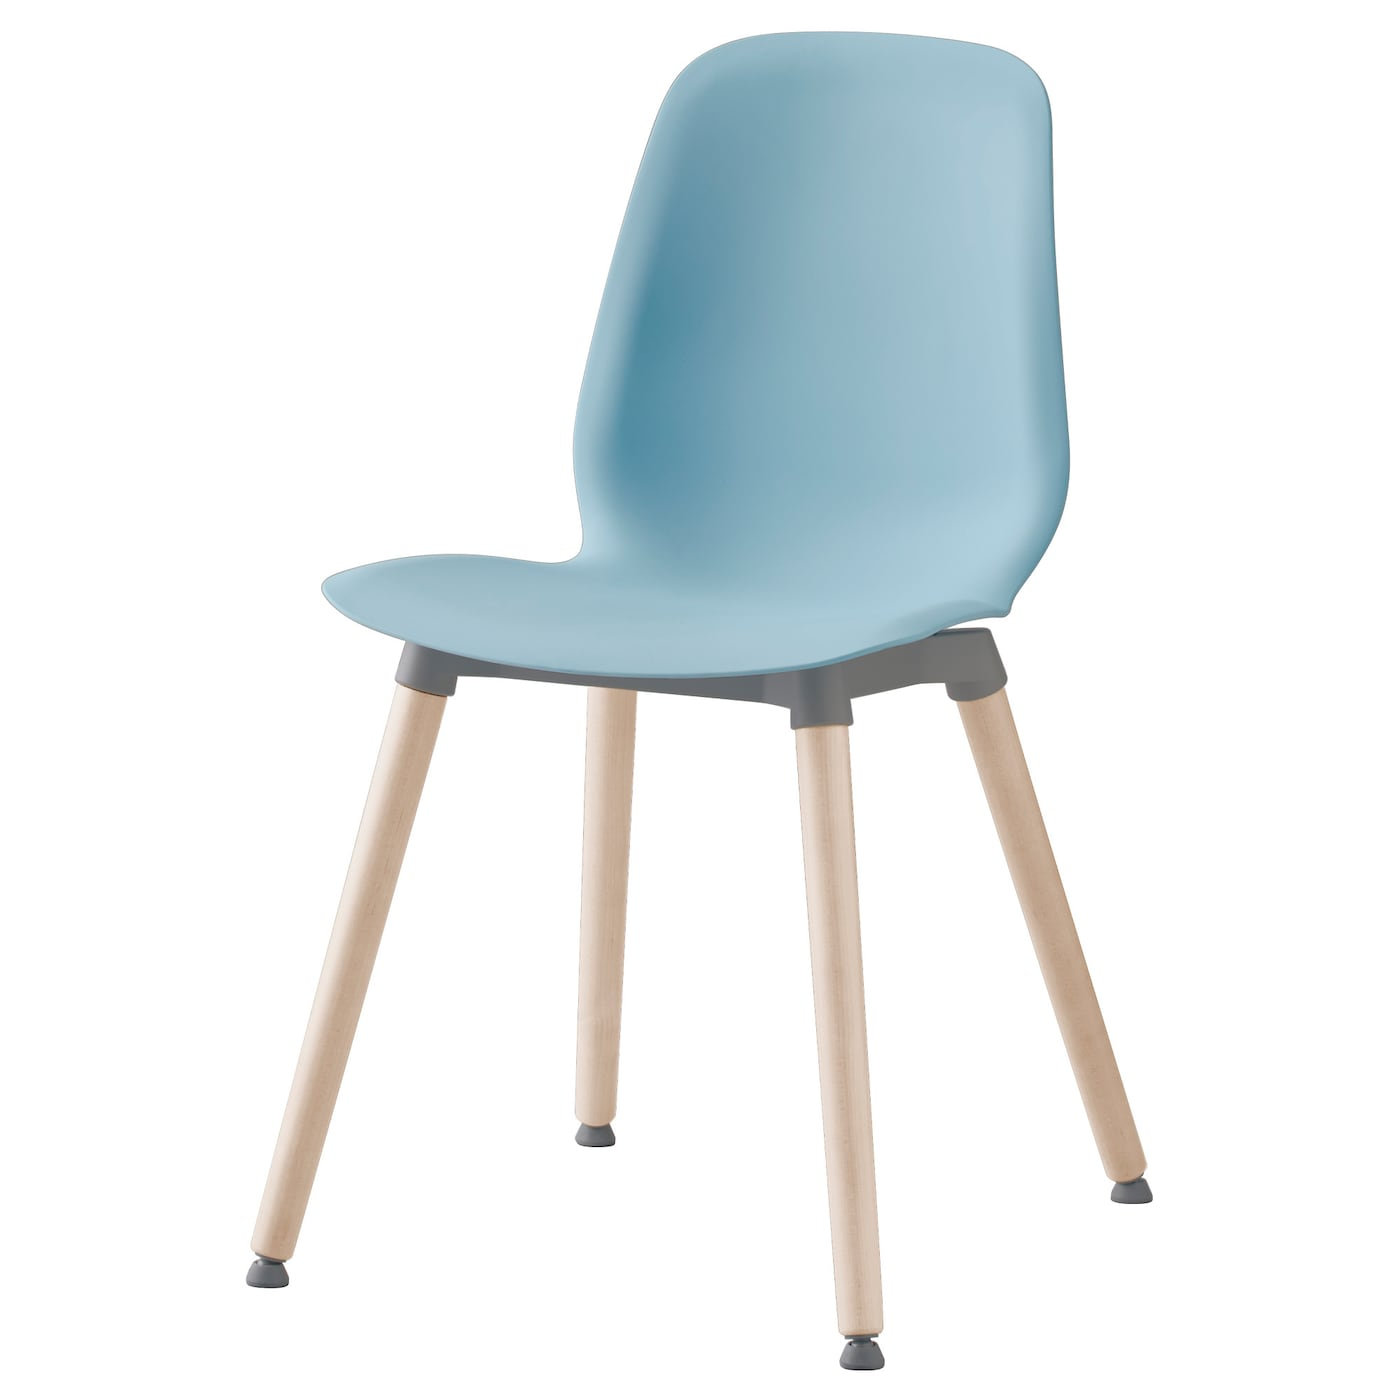 leifarne chair light blue ernfrid birch ikea. Black Bedroom Furniture Sets. Home Design Ideas